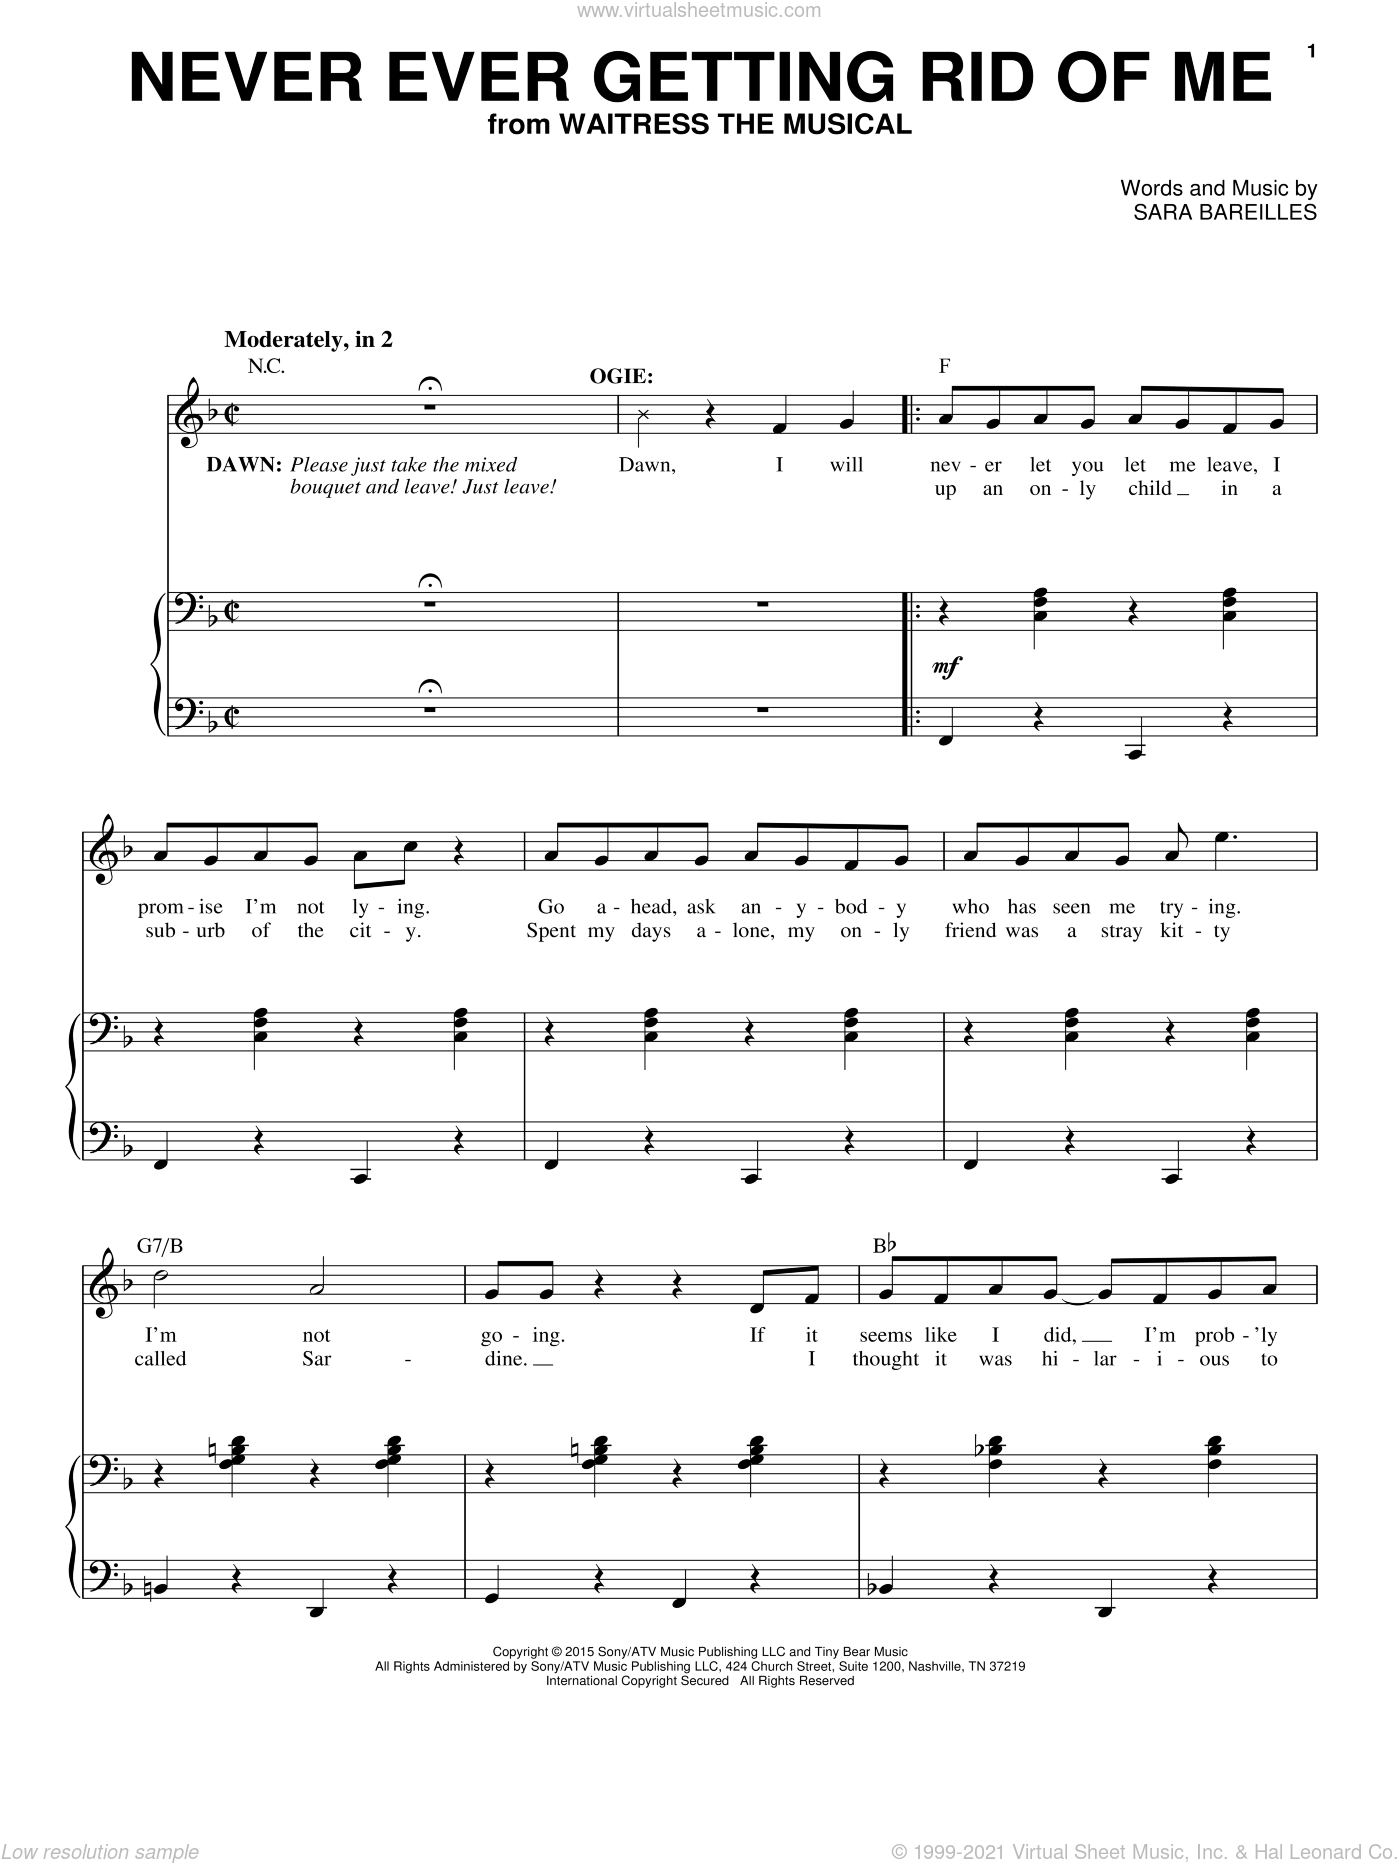 Never Ever Getting Rid Of Me sheet music for voice and piano by Sara Bareilles, intermediate